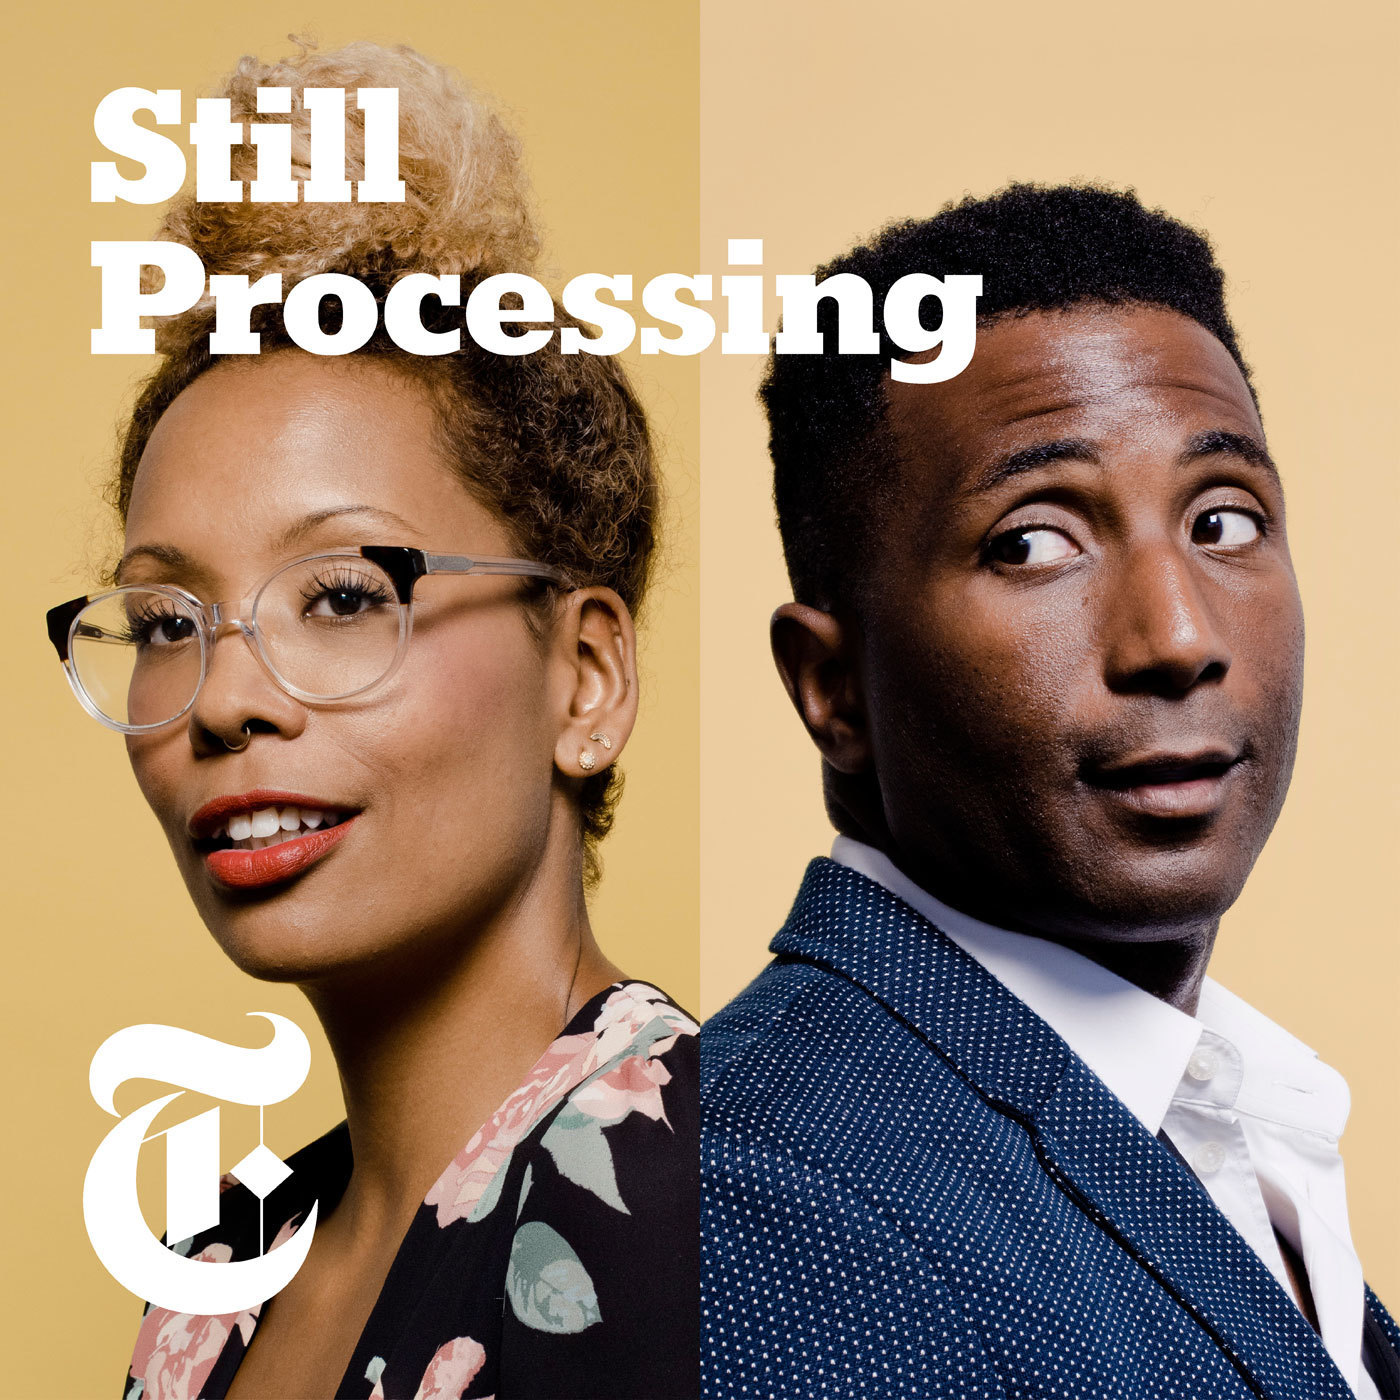 Welcome to the world according to Wesley Morris and Jenna Wortham! They're talking every week (to each other, to colleagues, to friends, to makers) about culture in the broadest sense. That means television, film, books, music — but also the culture of work, dating, the internet and how those all fit together. Wesley is The Times's Pulitzer Prize winning critic at large, and Jenna is a staff writer for The New York Times Magazine. They're working it out, one week at a time.